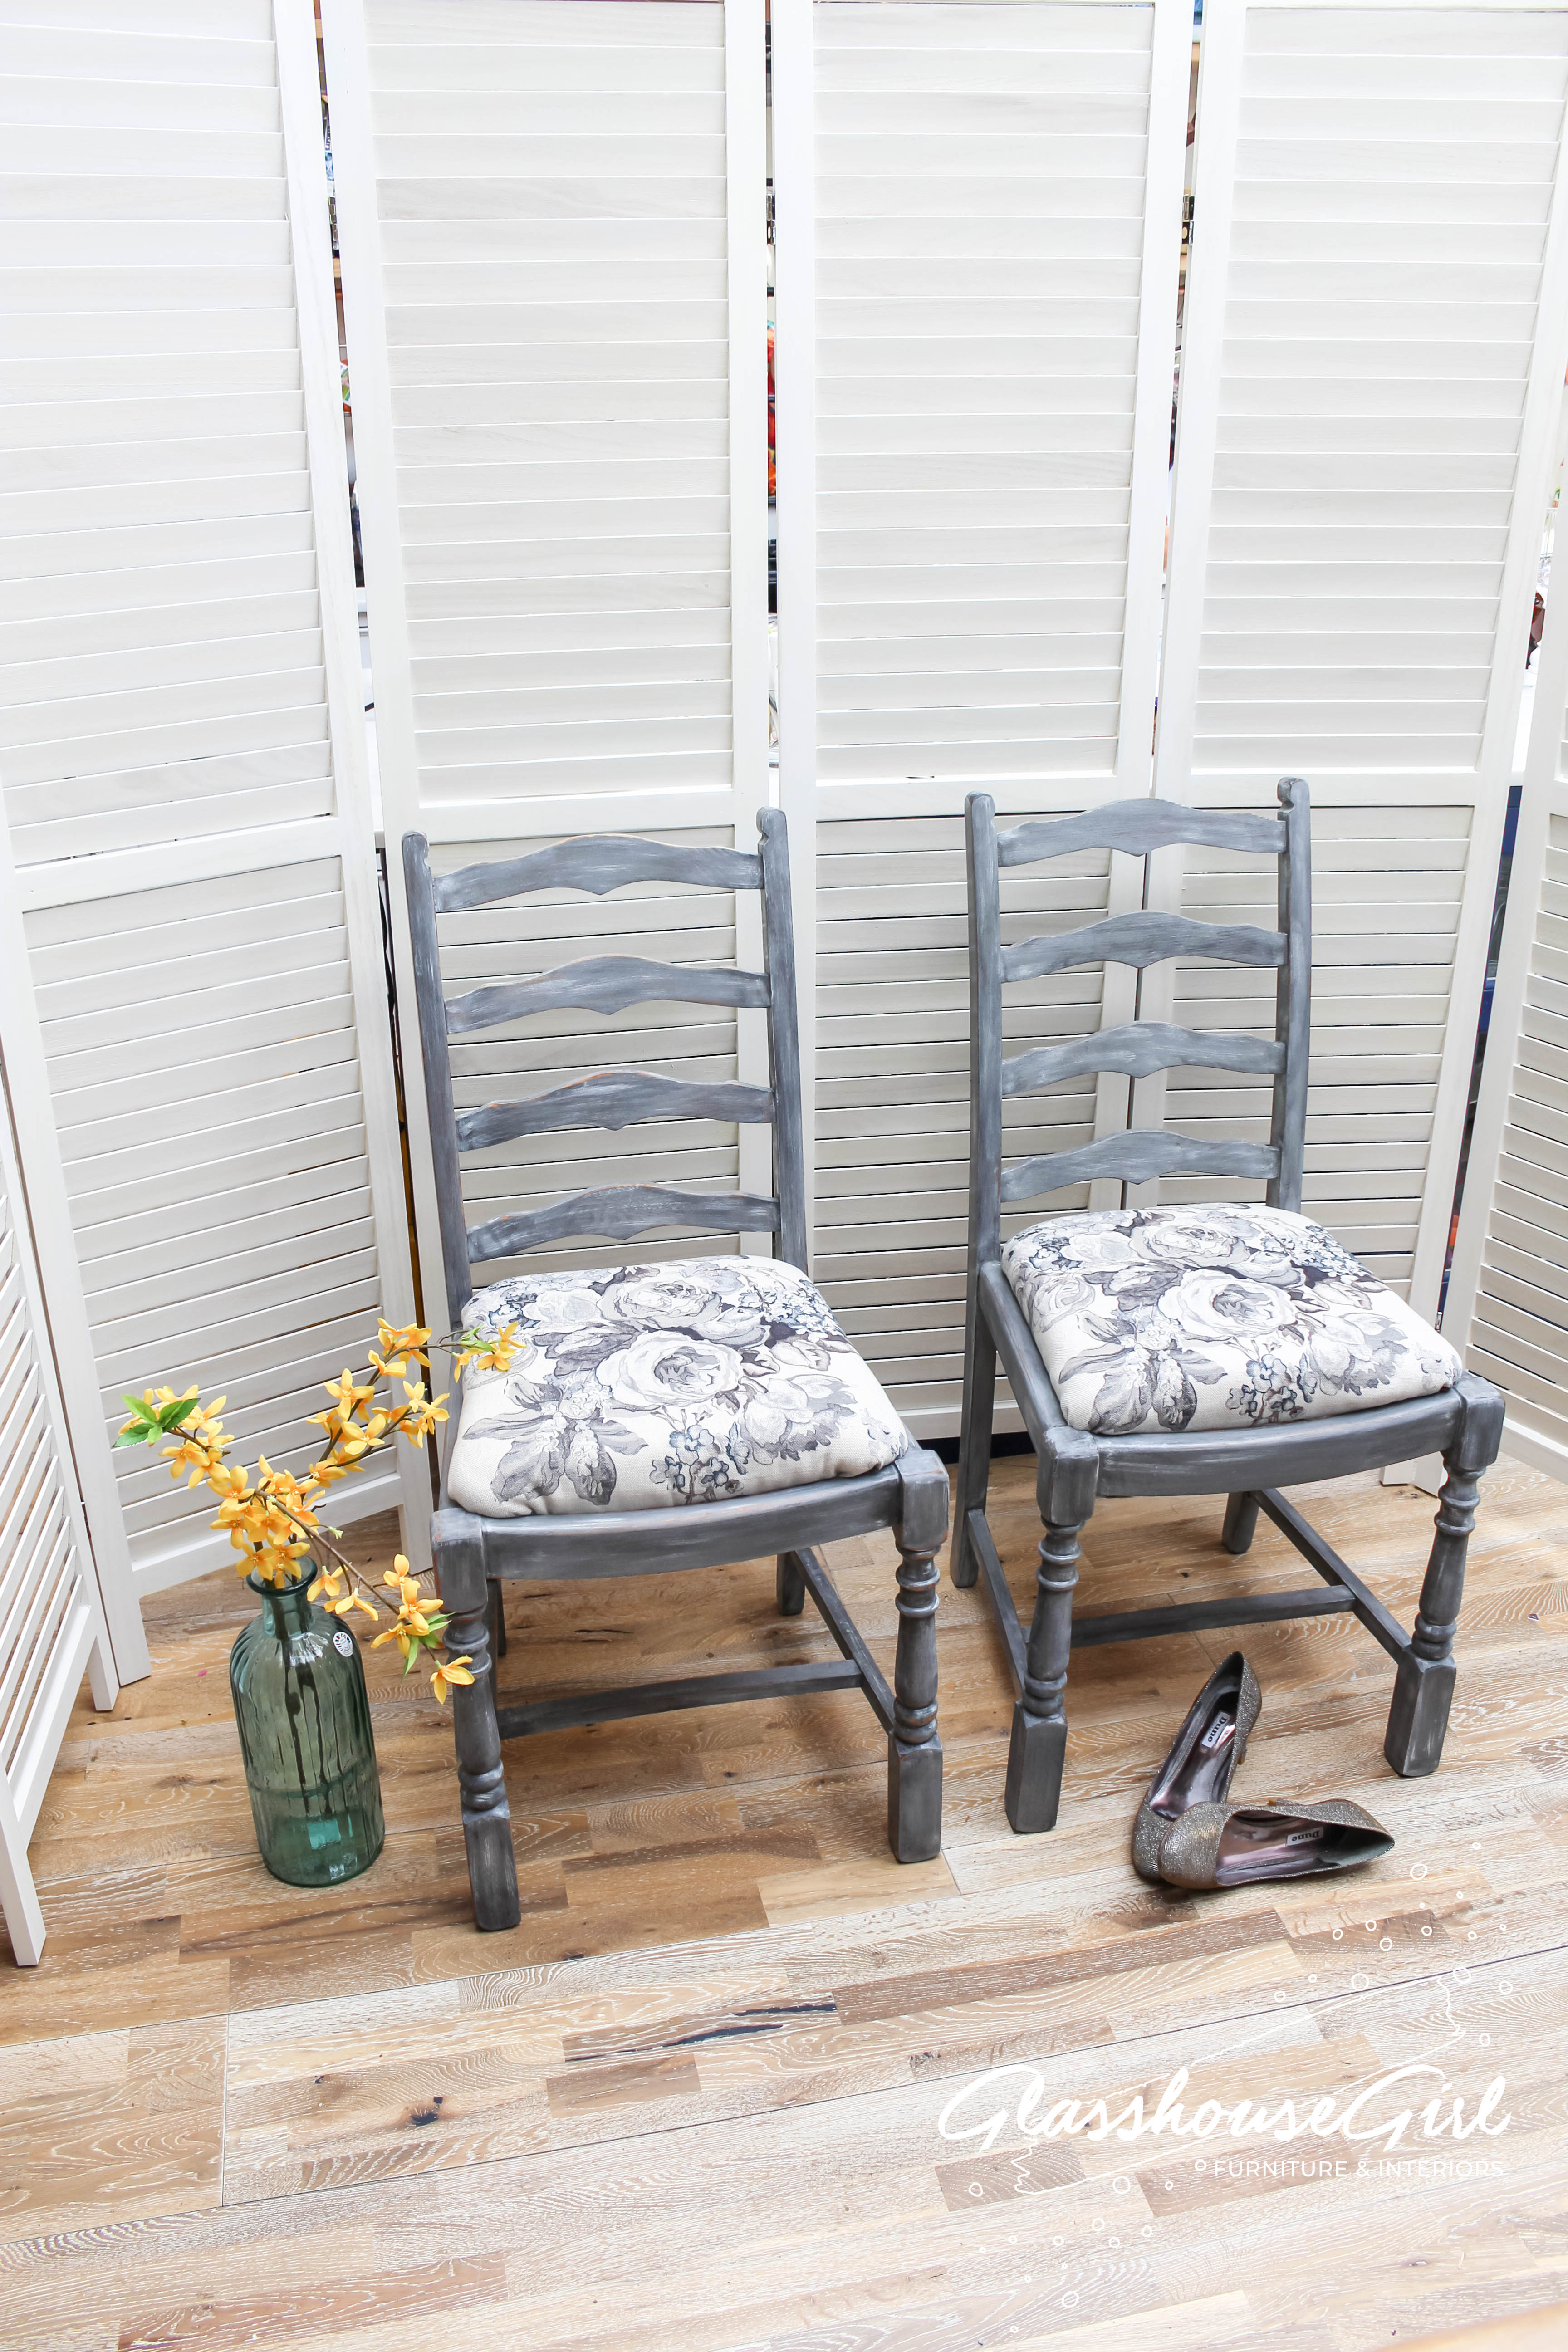 Grey Roses Faded Elegance Oak Chairs Glasshouse Girl